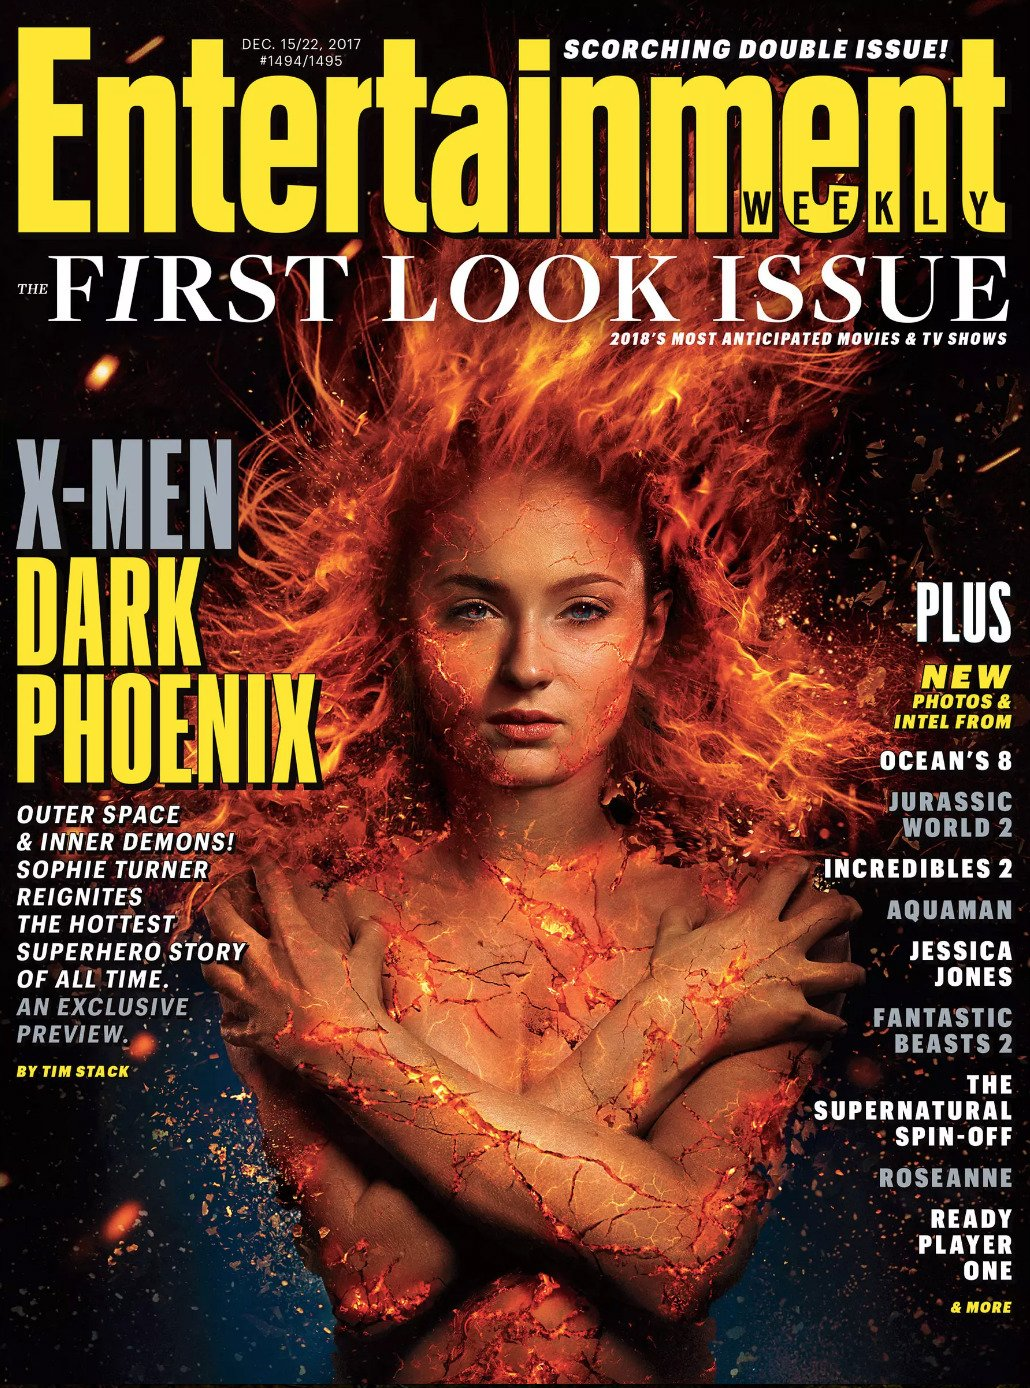 Director Simon Kinberg And Jessica Chastain Shed Some Light On Dark Phoenix's Shape-Shifting Villain